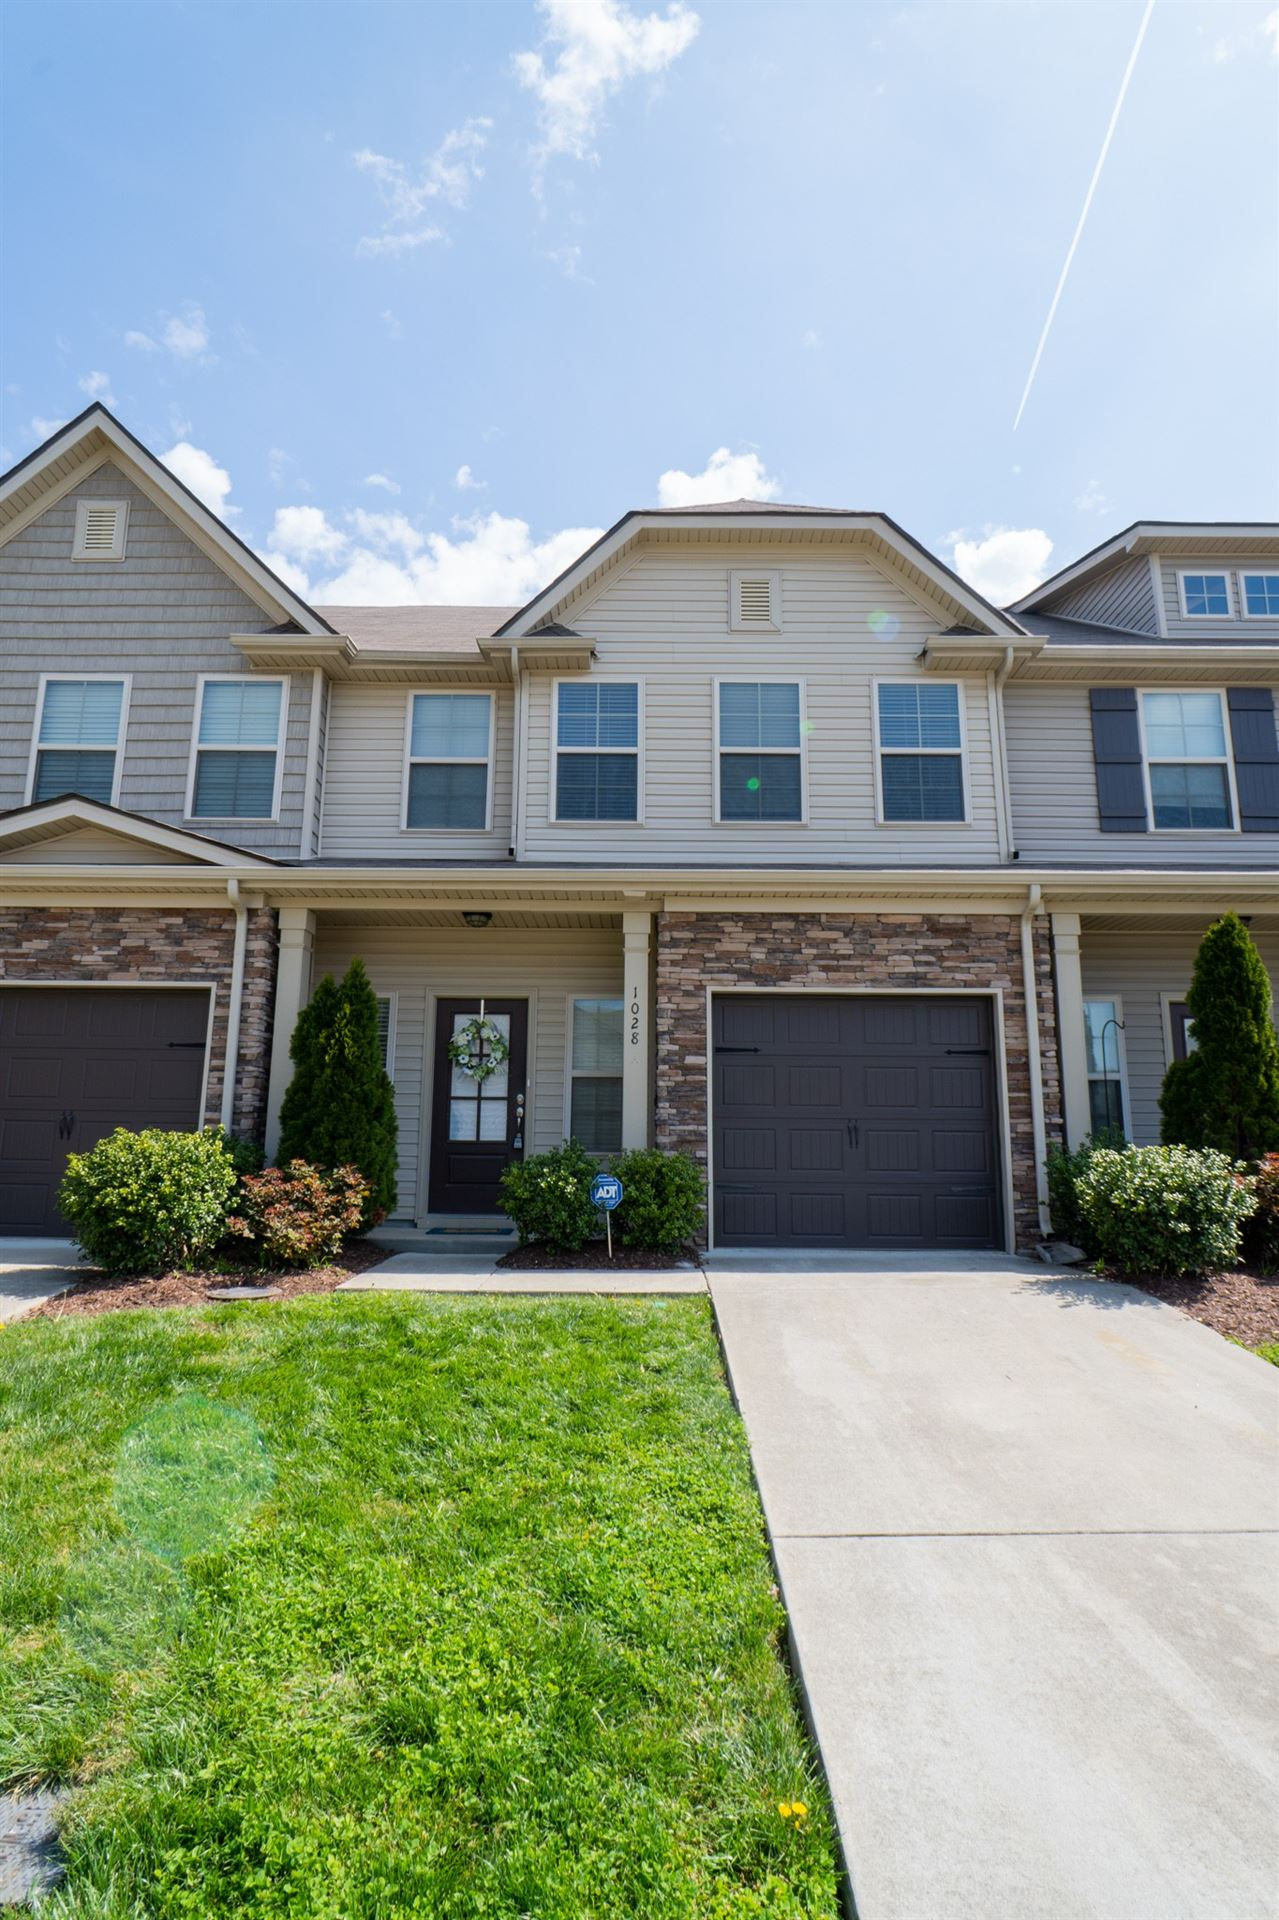 1028 Chatsworth Dr, Old Hickory, TN 37138 - MLS#: 2242543